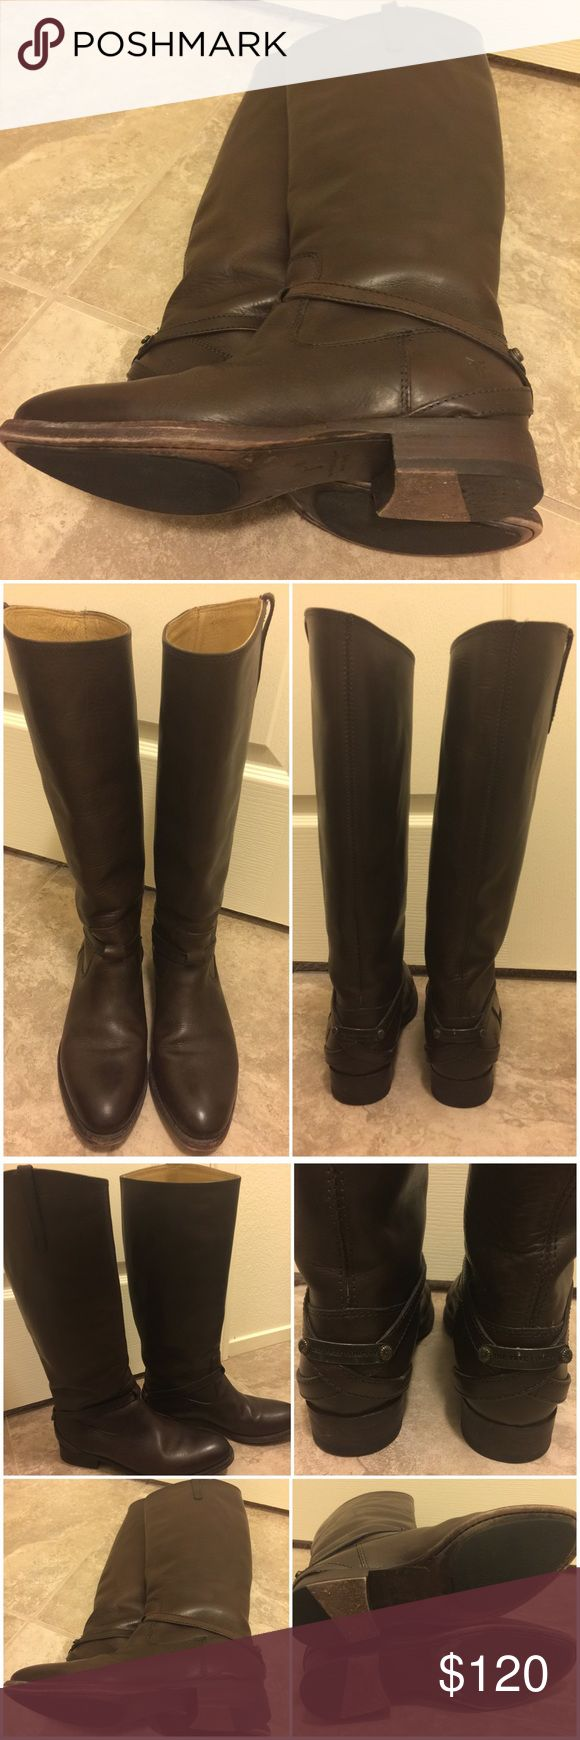 Frye Riding Boots -- Chocolate Brown Beautiful Frye Riding Boots in chocolate brown. Excellent condition. These, along with the other pairs I've posted in the past, are just a tad bit too snug for my liking when I wear thicker socks. I'm clearing out my closet to make room for that perfect pair of Frye boots that fit exactly how I want them to fit; I'm still on the hunt for them 😊 The boot height measures 15' w/ a 1' heel to total 16 inches. Calf circumference: approx 14.5'. Pls. note these…